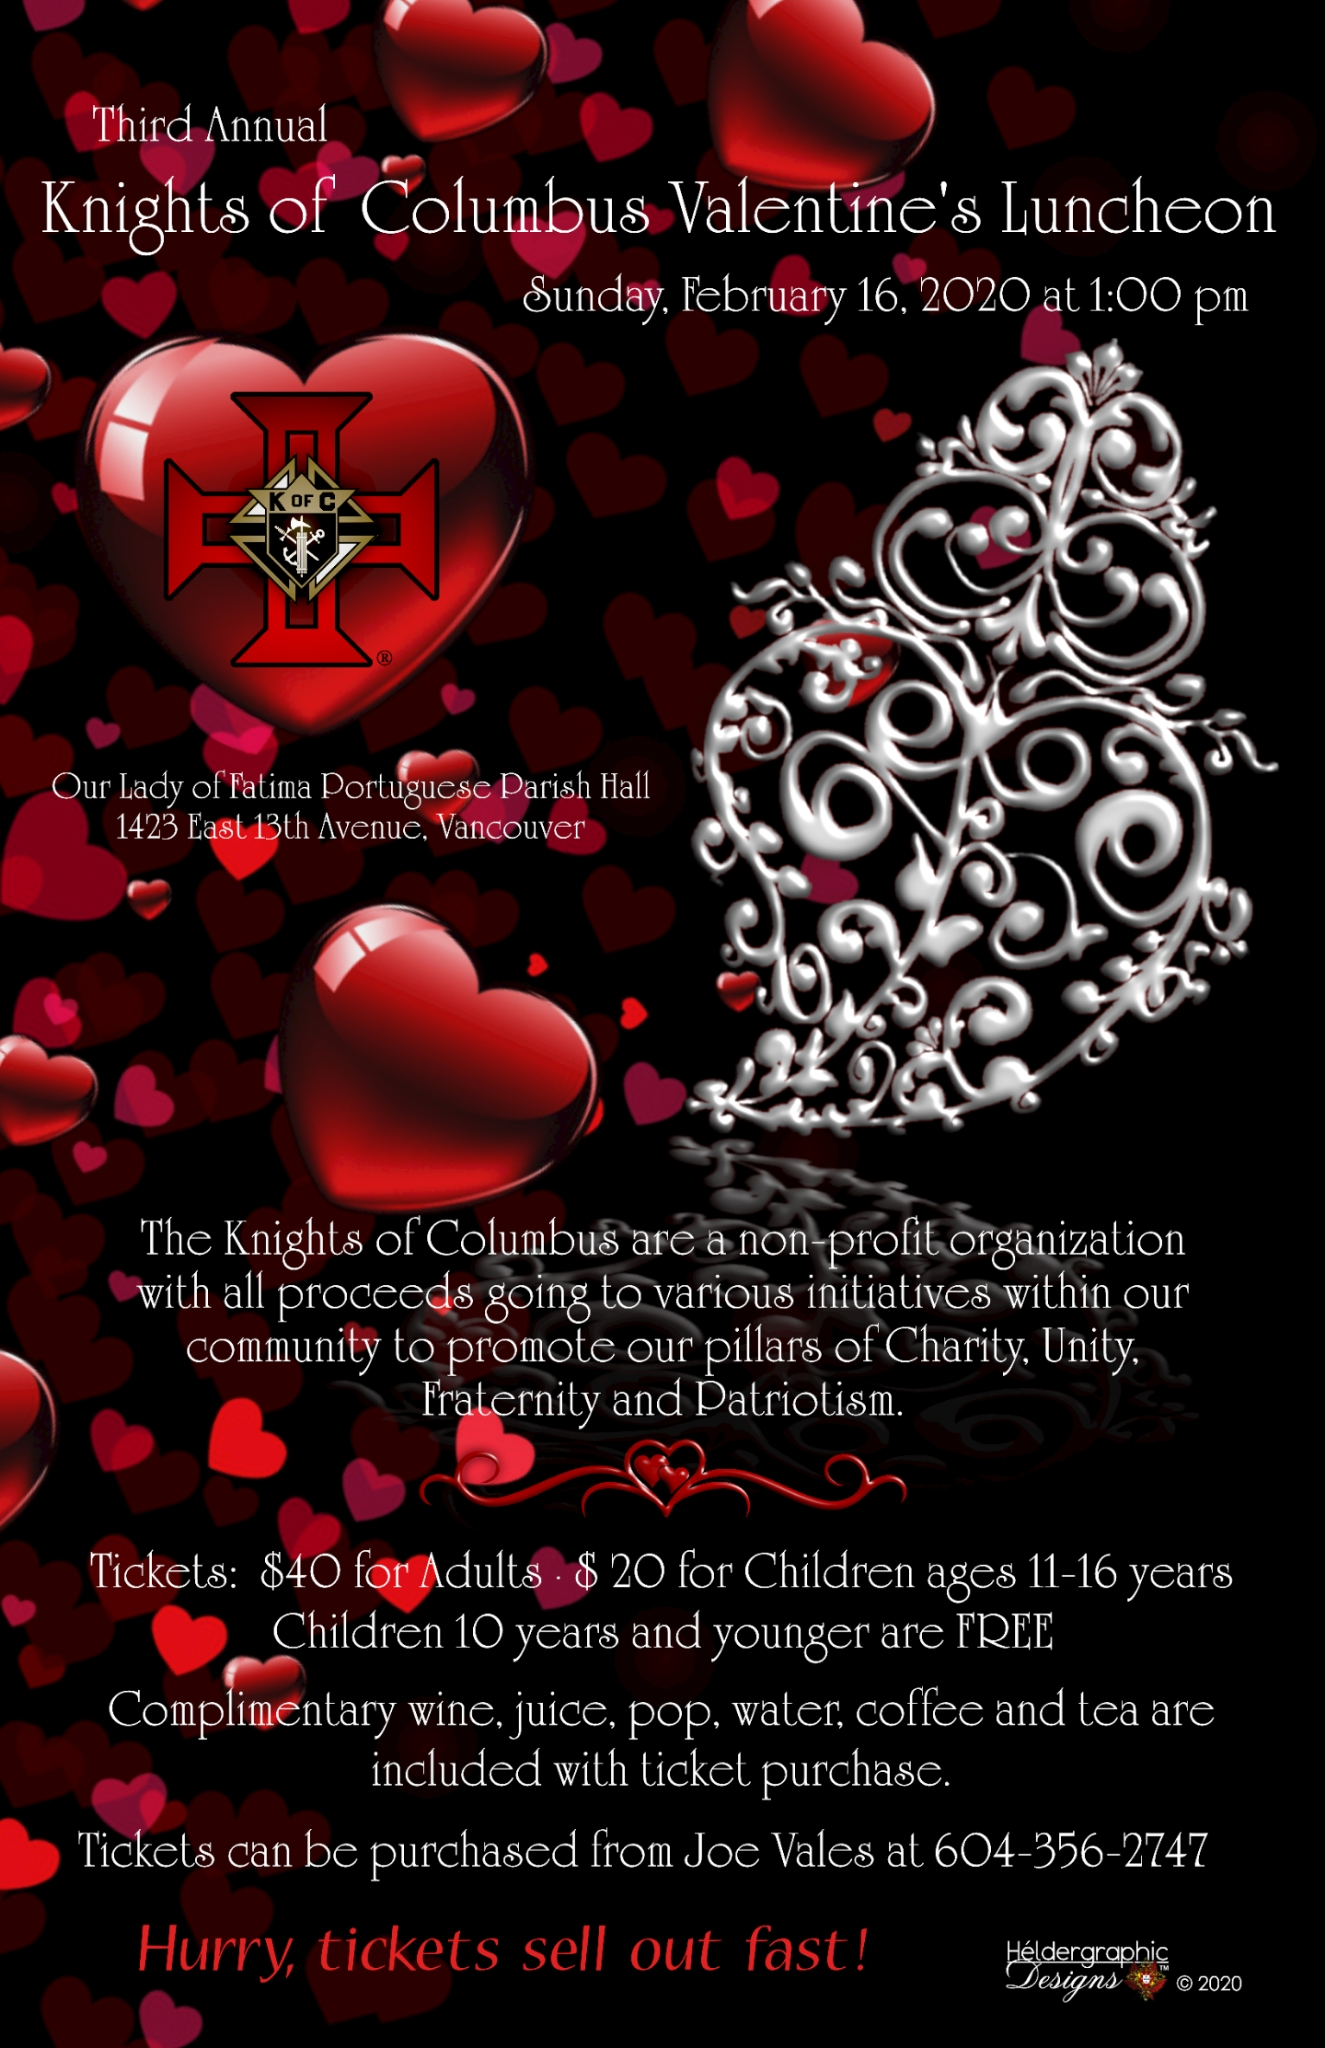 Third Annual Knights of Columbus Valentine's Luncheon